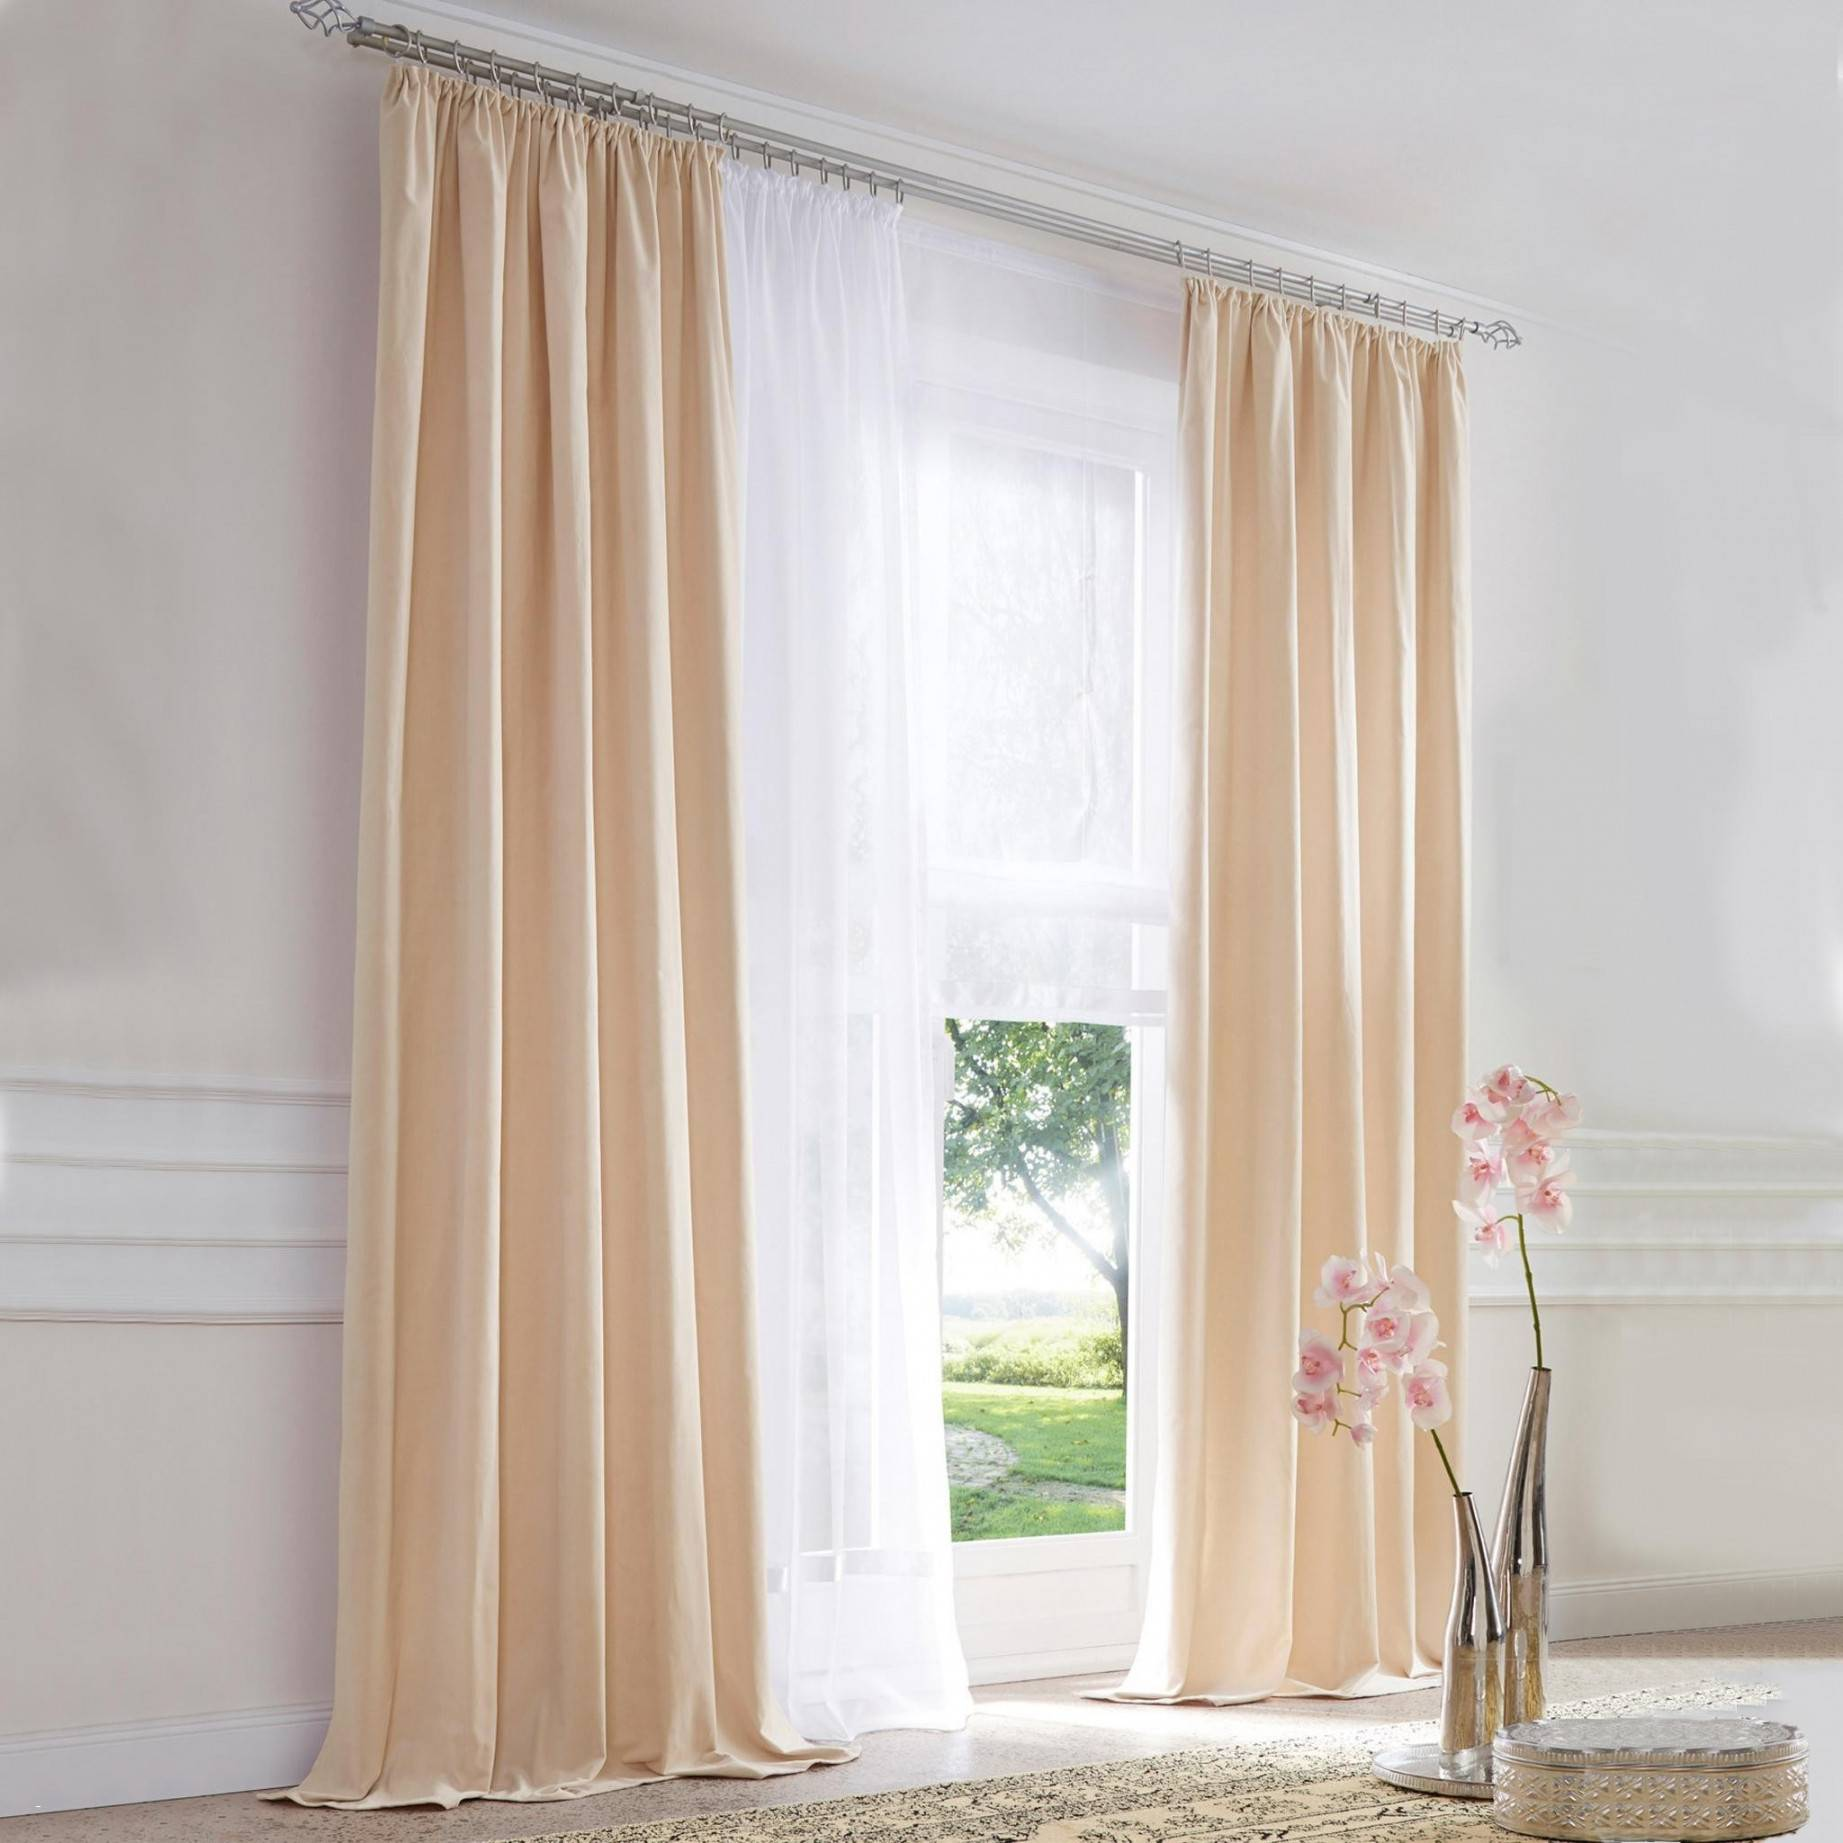 latest window curtains styles best luxury cool bedroom curtains bemalas of latest window curtains styles